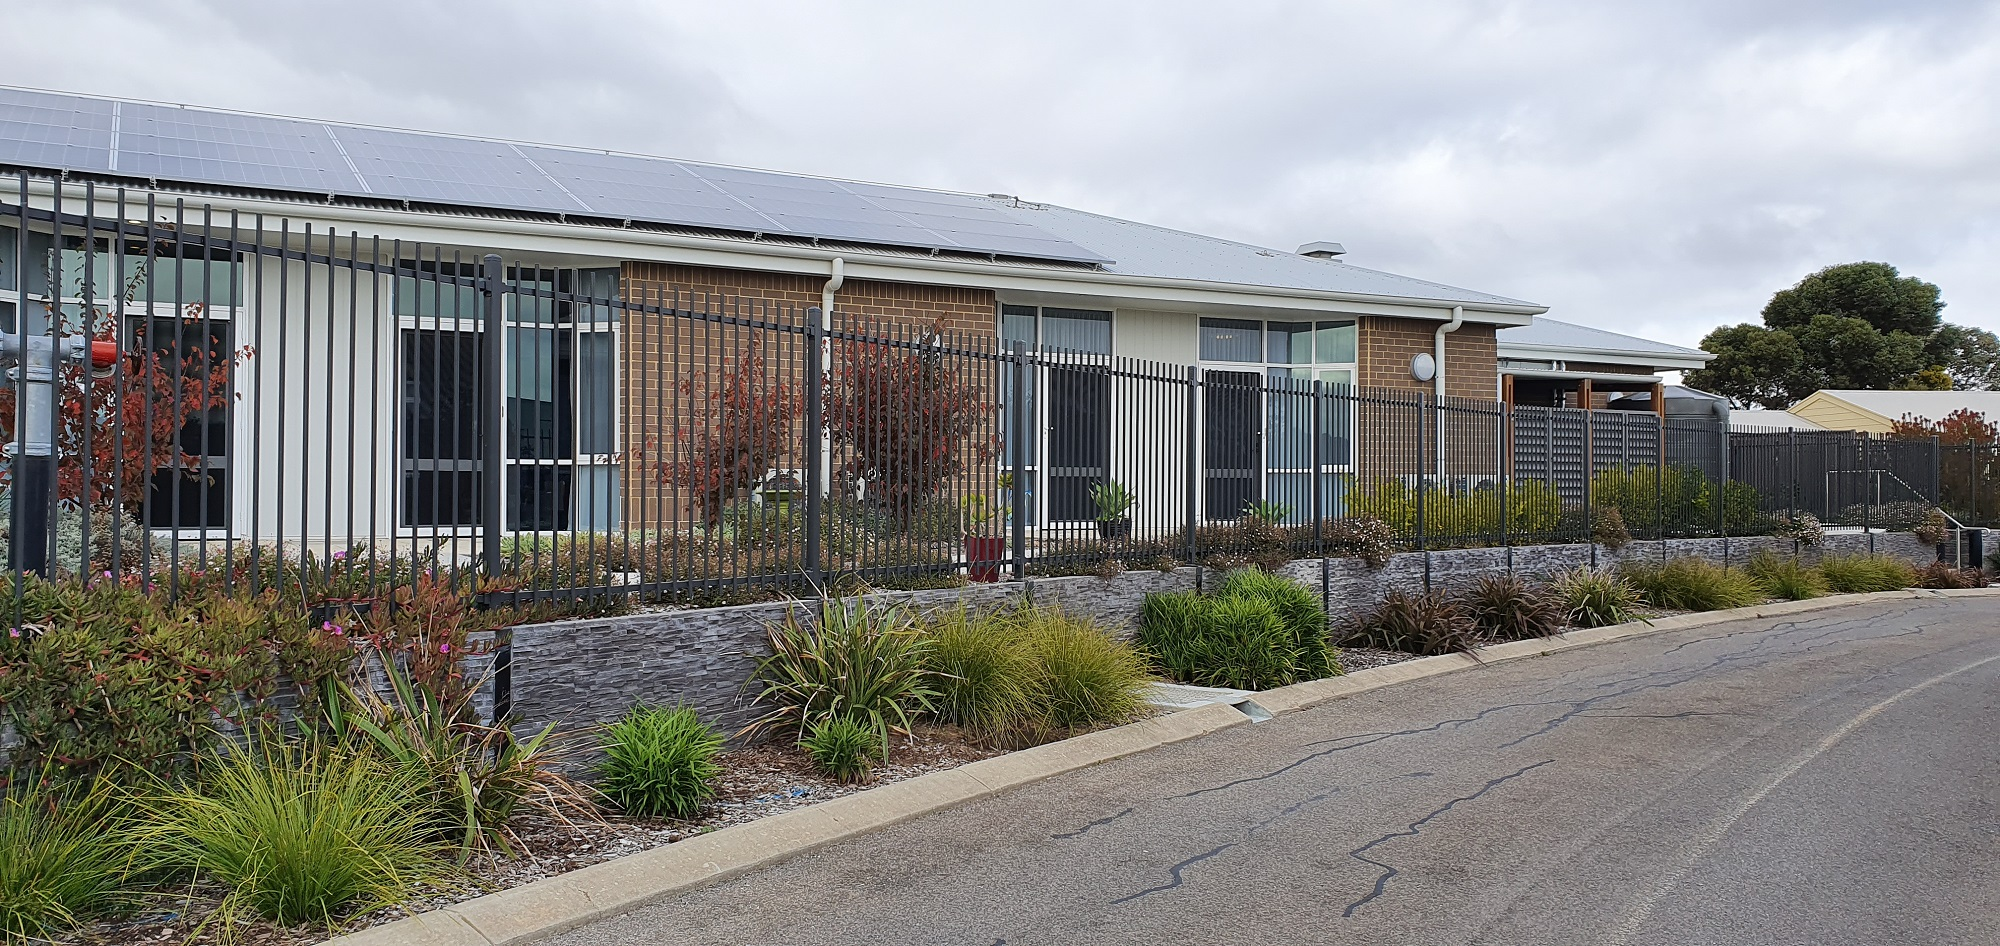 Commercial Fencing Adelaide Fence Centre Retirement Village Boundary Fencing 9